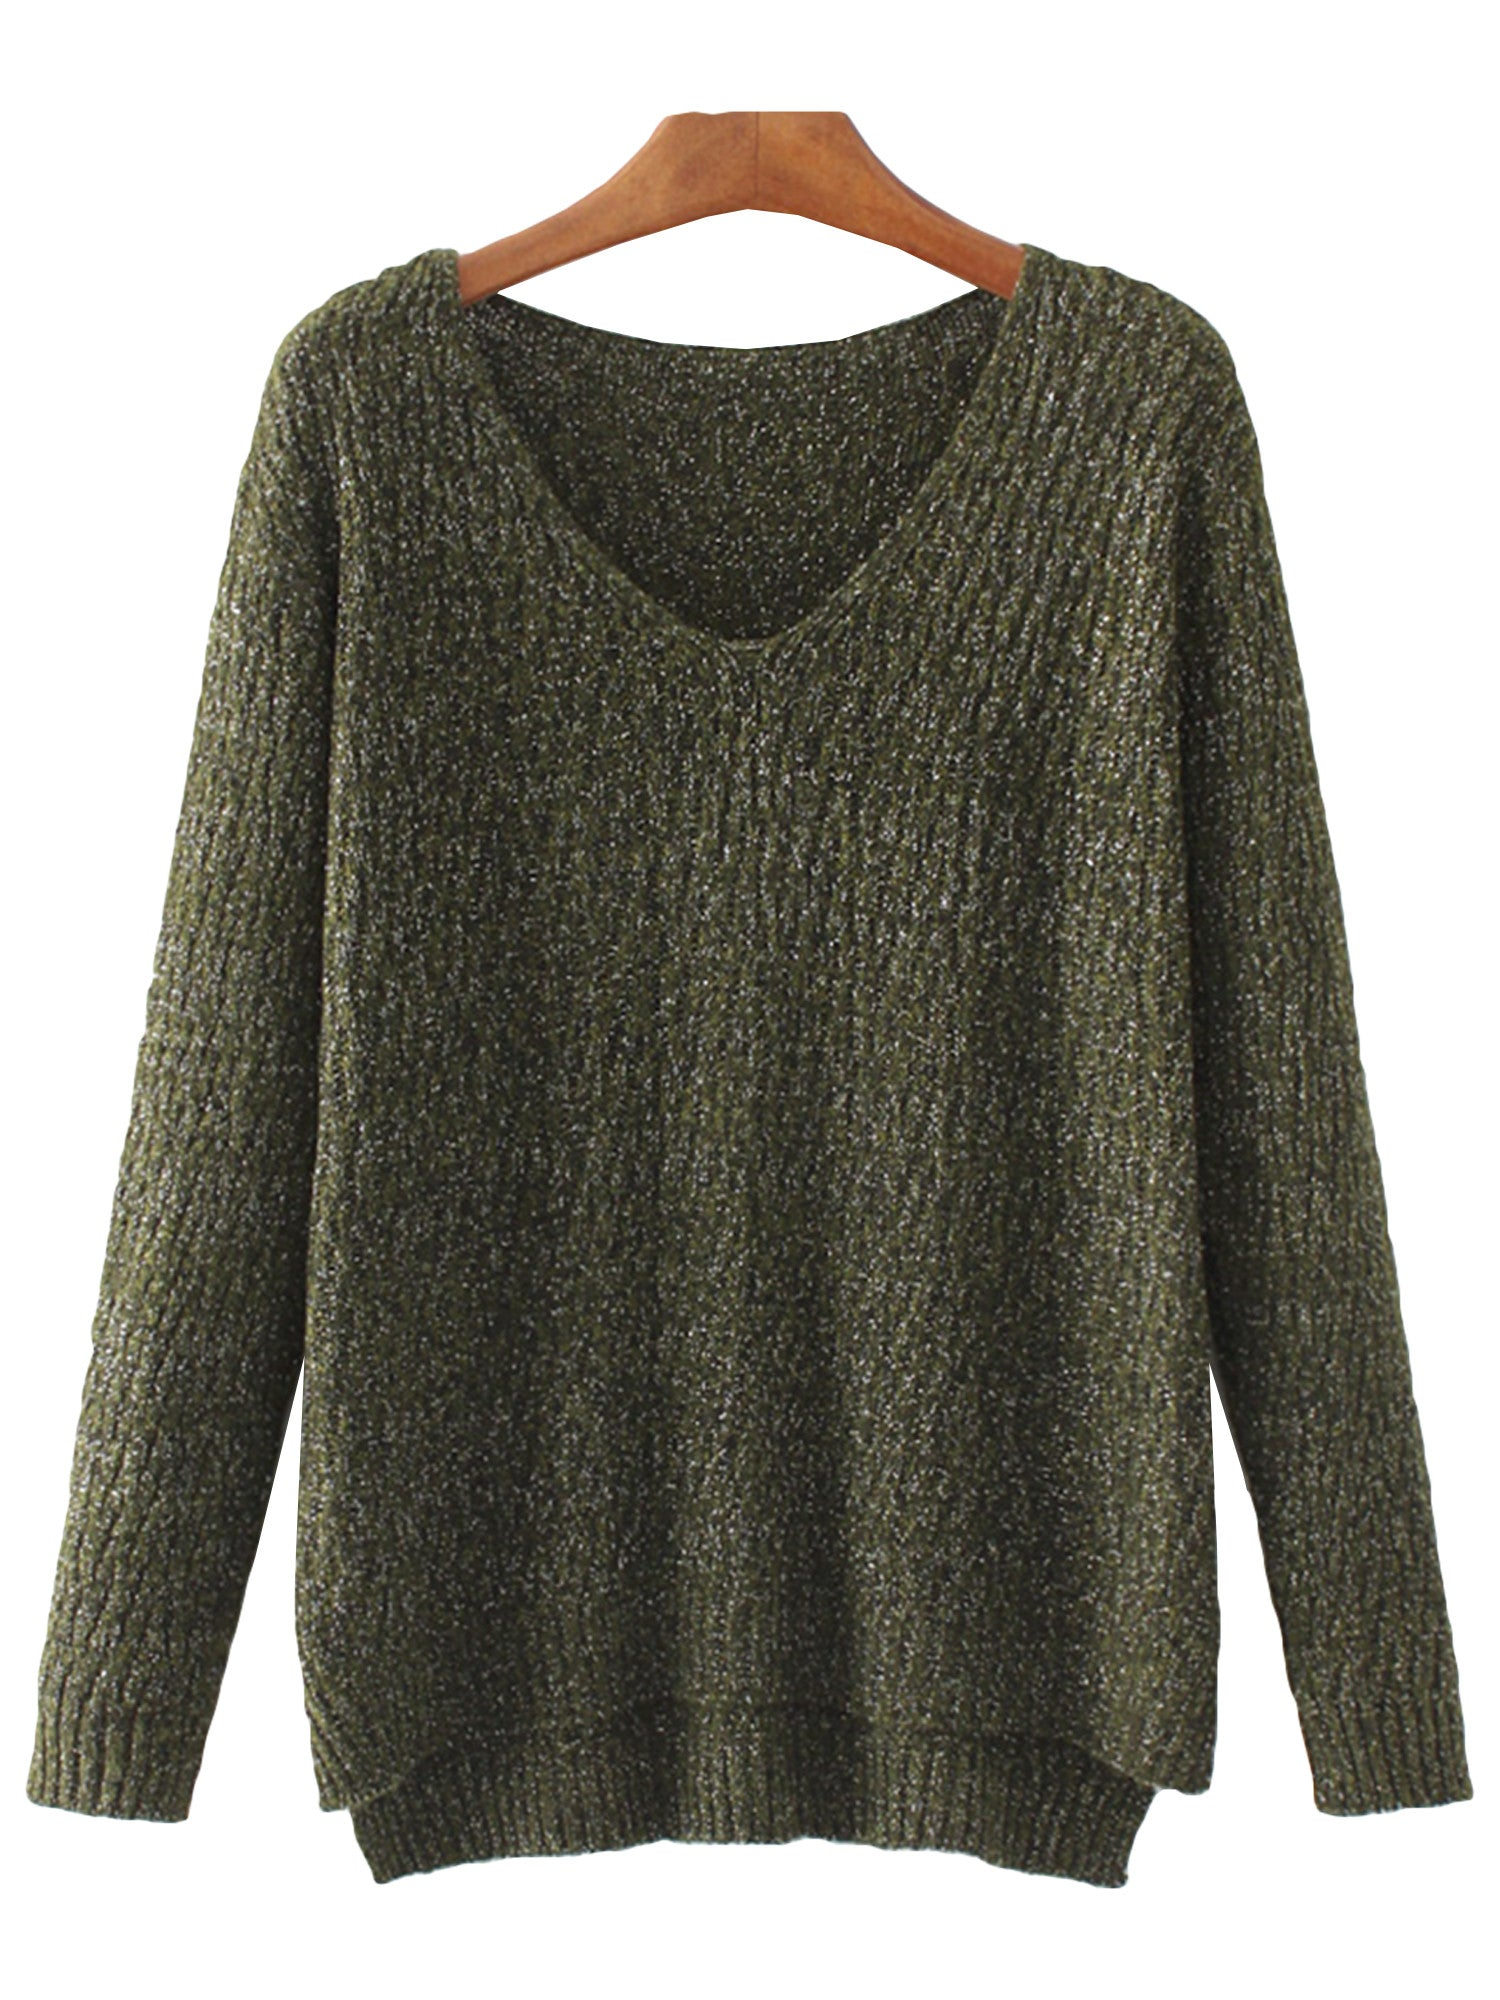 'Joan' Olive Mock Sweater